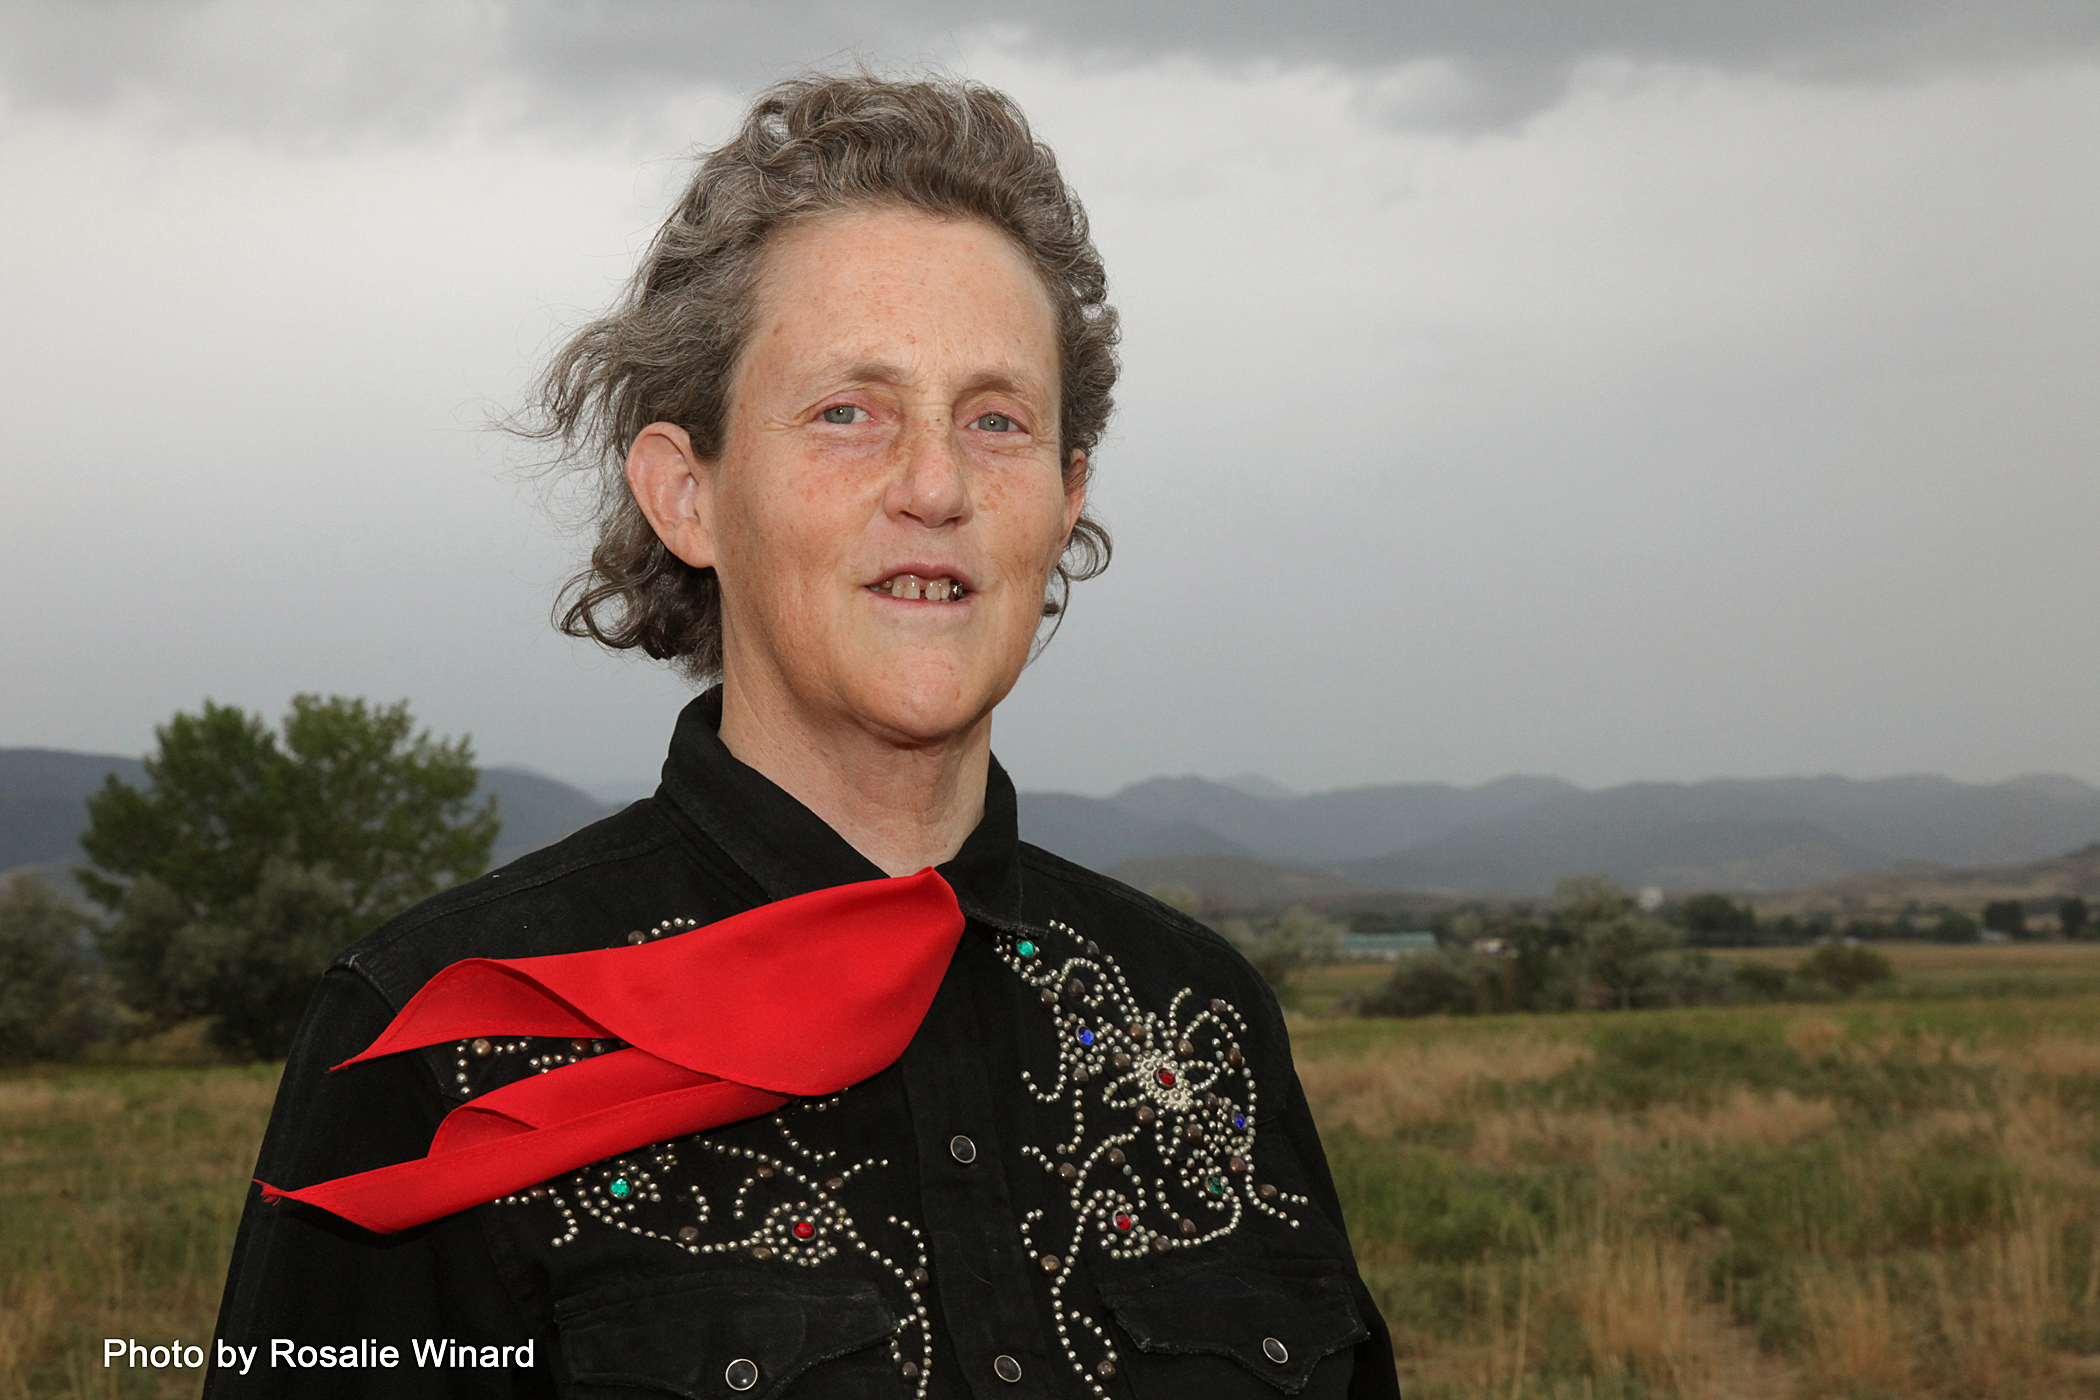 Photograph of the author Temple Grandin